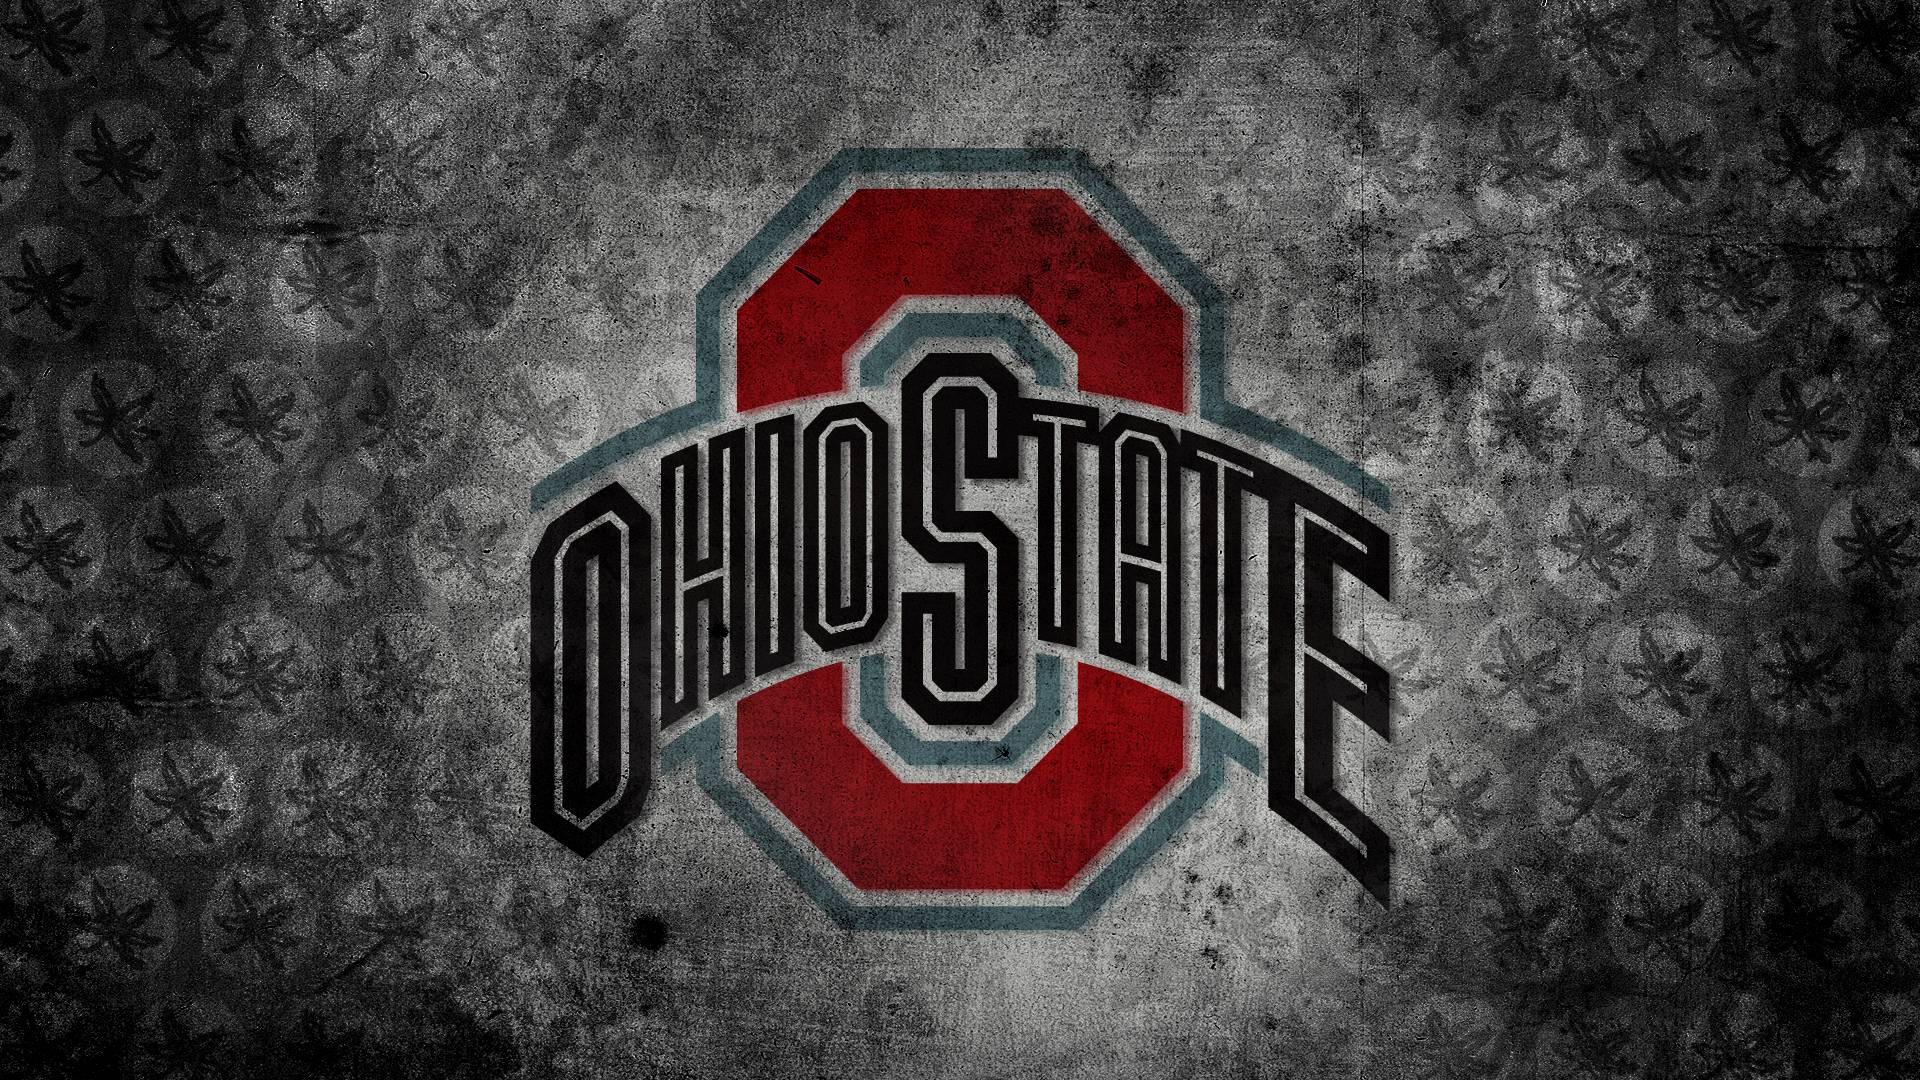 Ohio State University Wallpaper